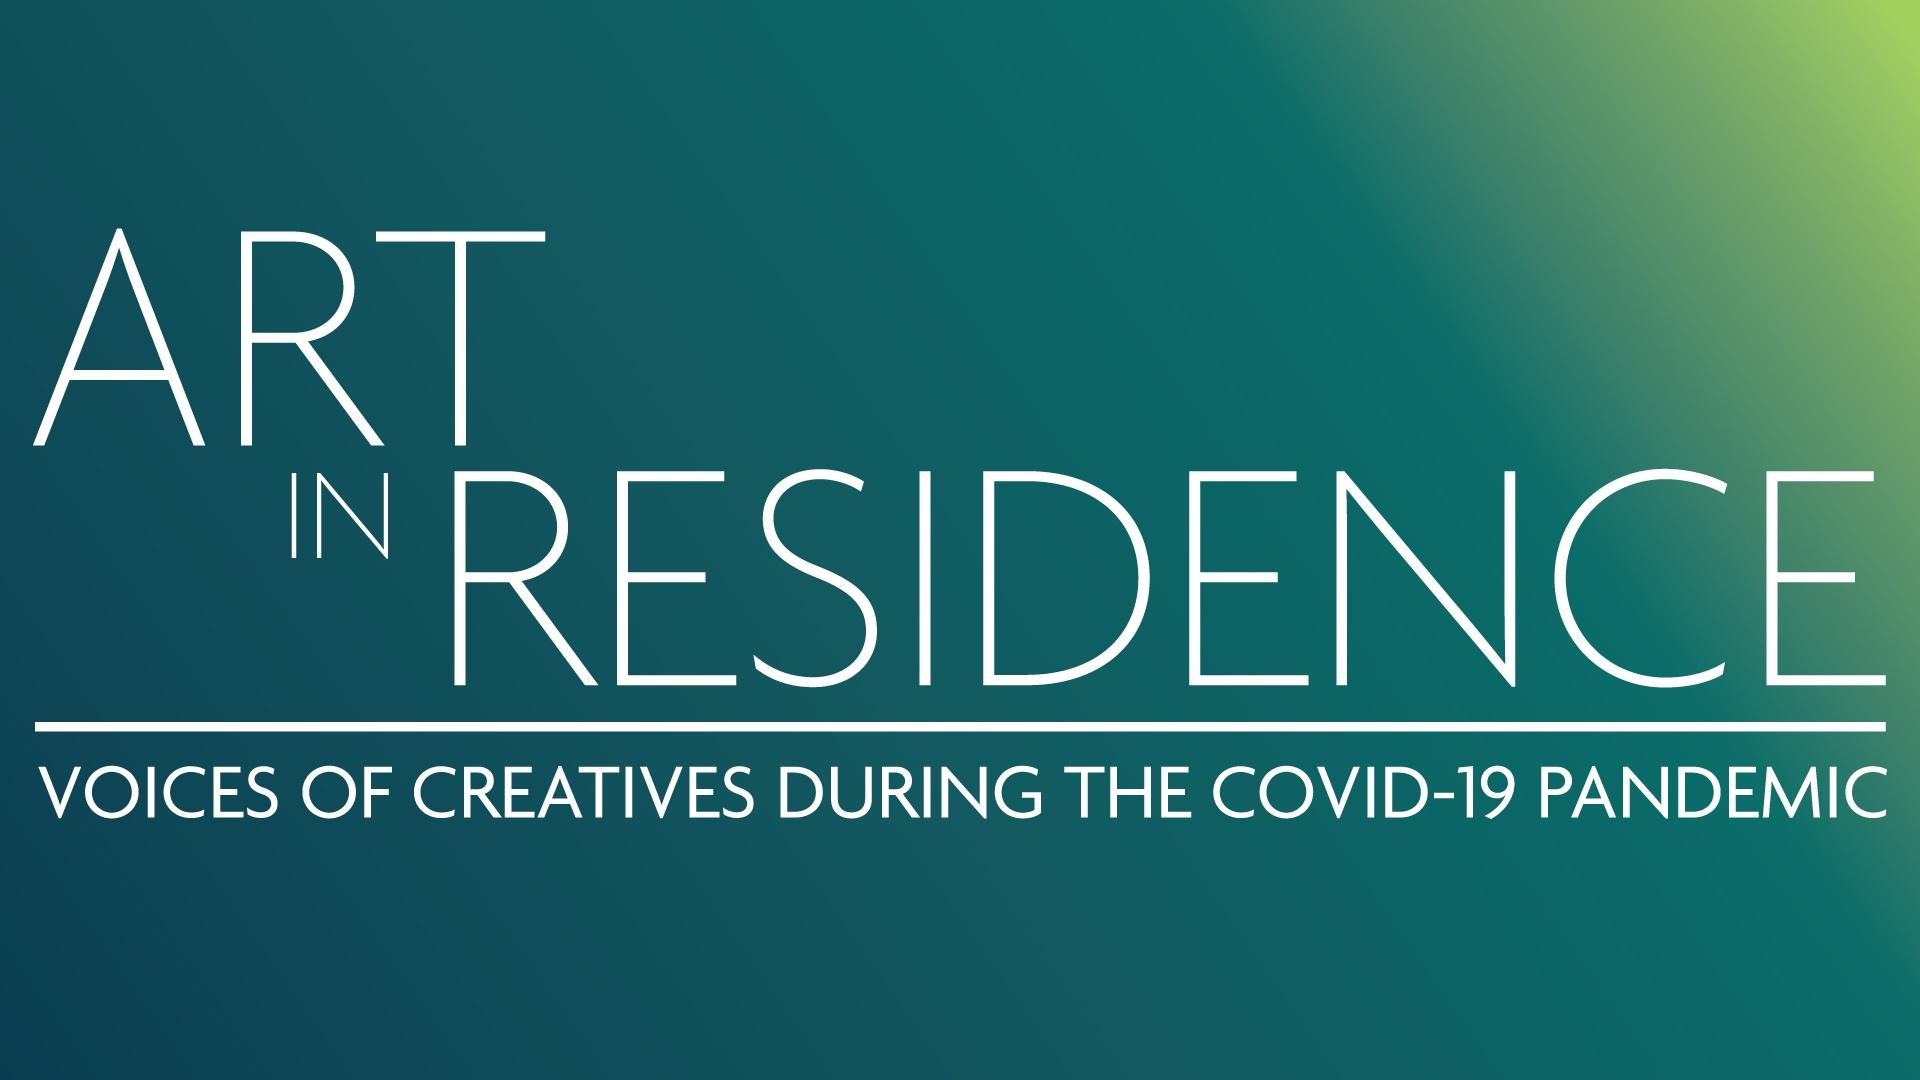 Art in Residence Logo on a blue and green ombre background